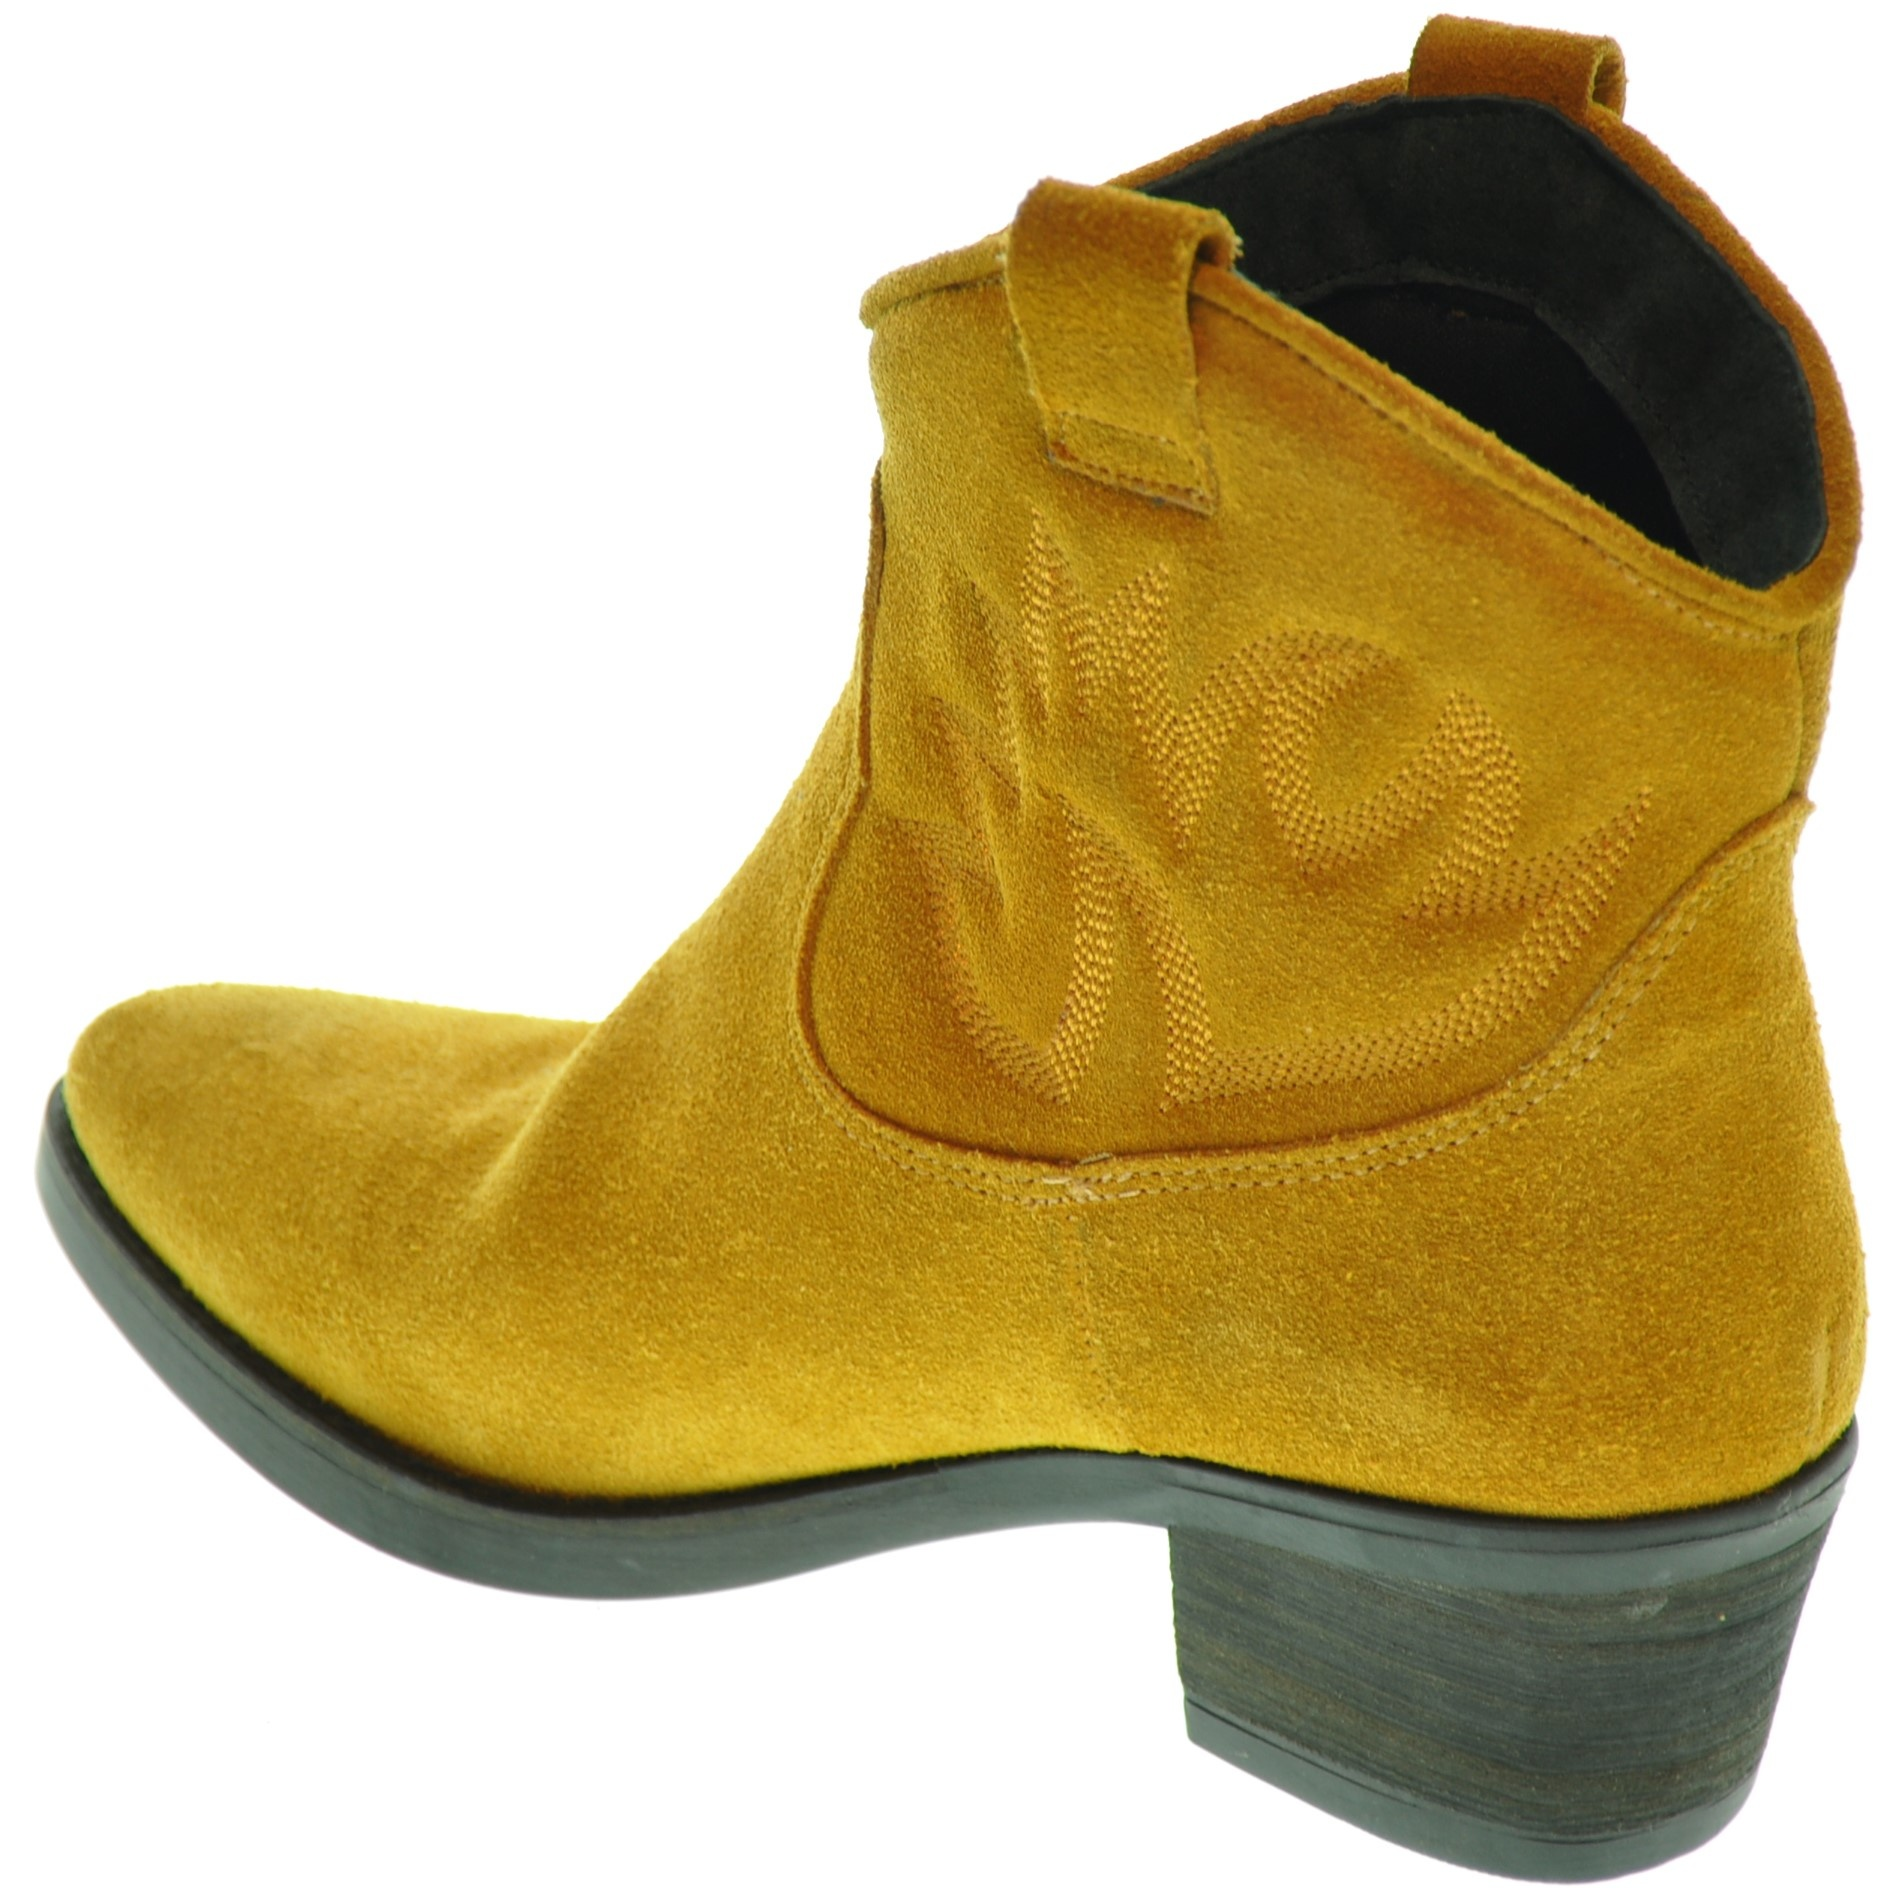 Shoecolate ShoeColate Western Boot 201MON05 ( 36 T/M 41 )